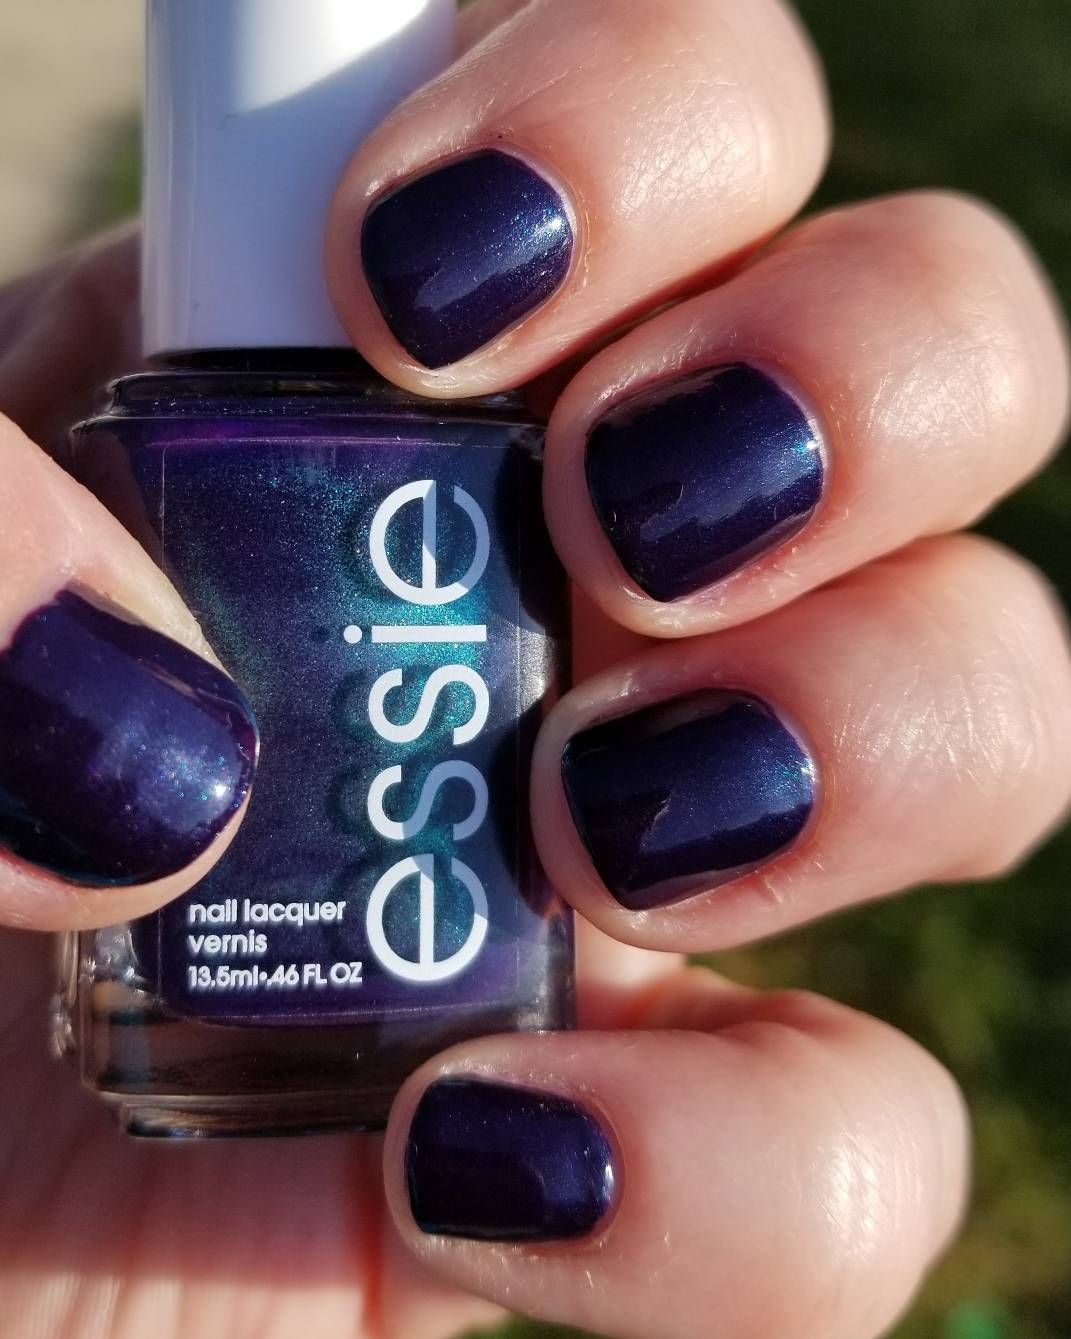 Essie | Dressed to the Nineties ☆ "|1071|1339|?|99d396921f16a8a7a710ddfc8187e43b|False|NSFW|0.3173241913318634